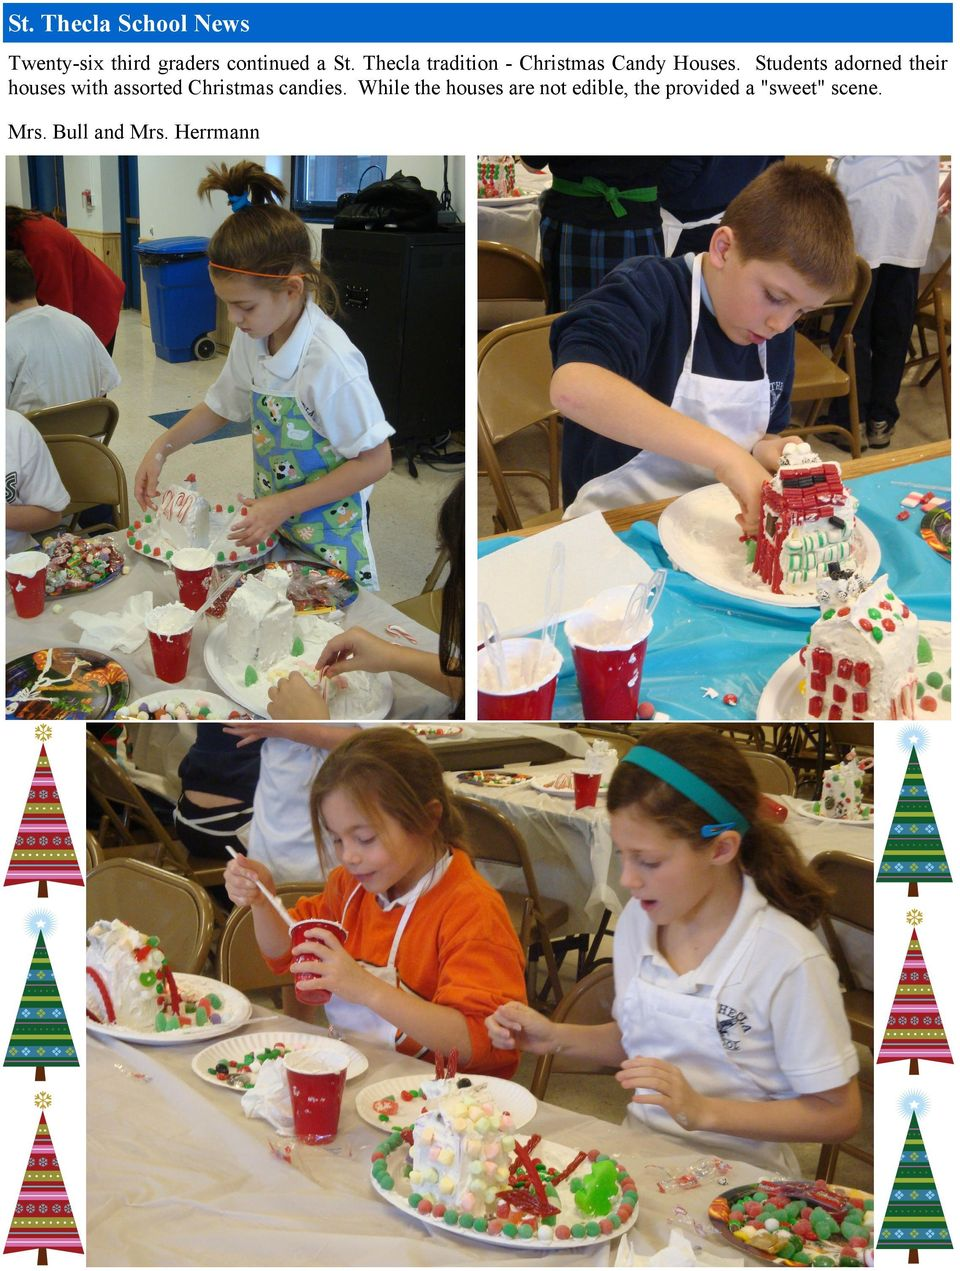 Students adorned their houses with assorted Christmas candies.